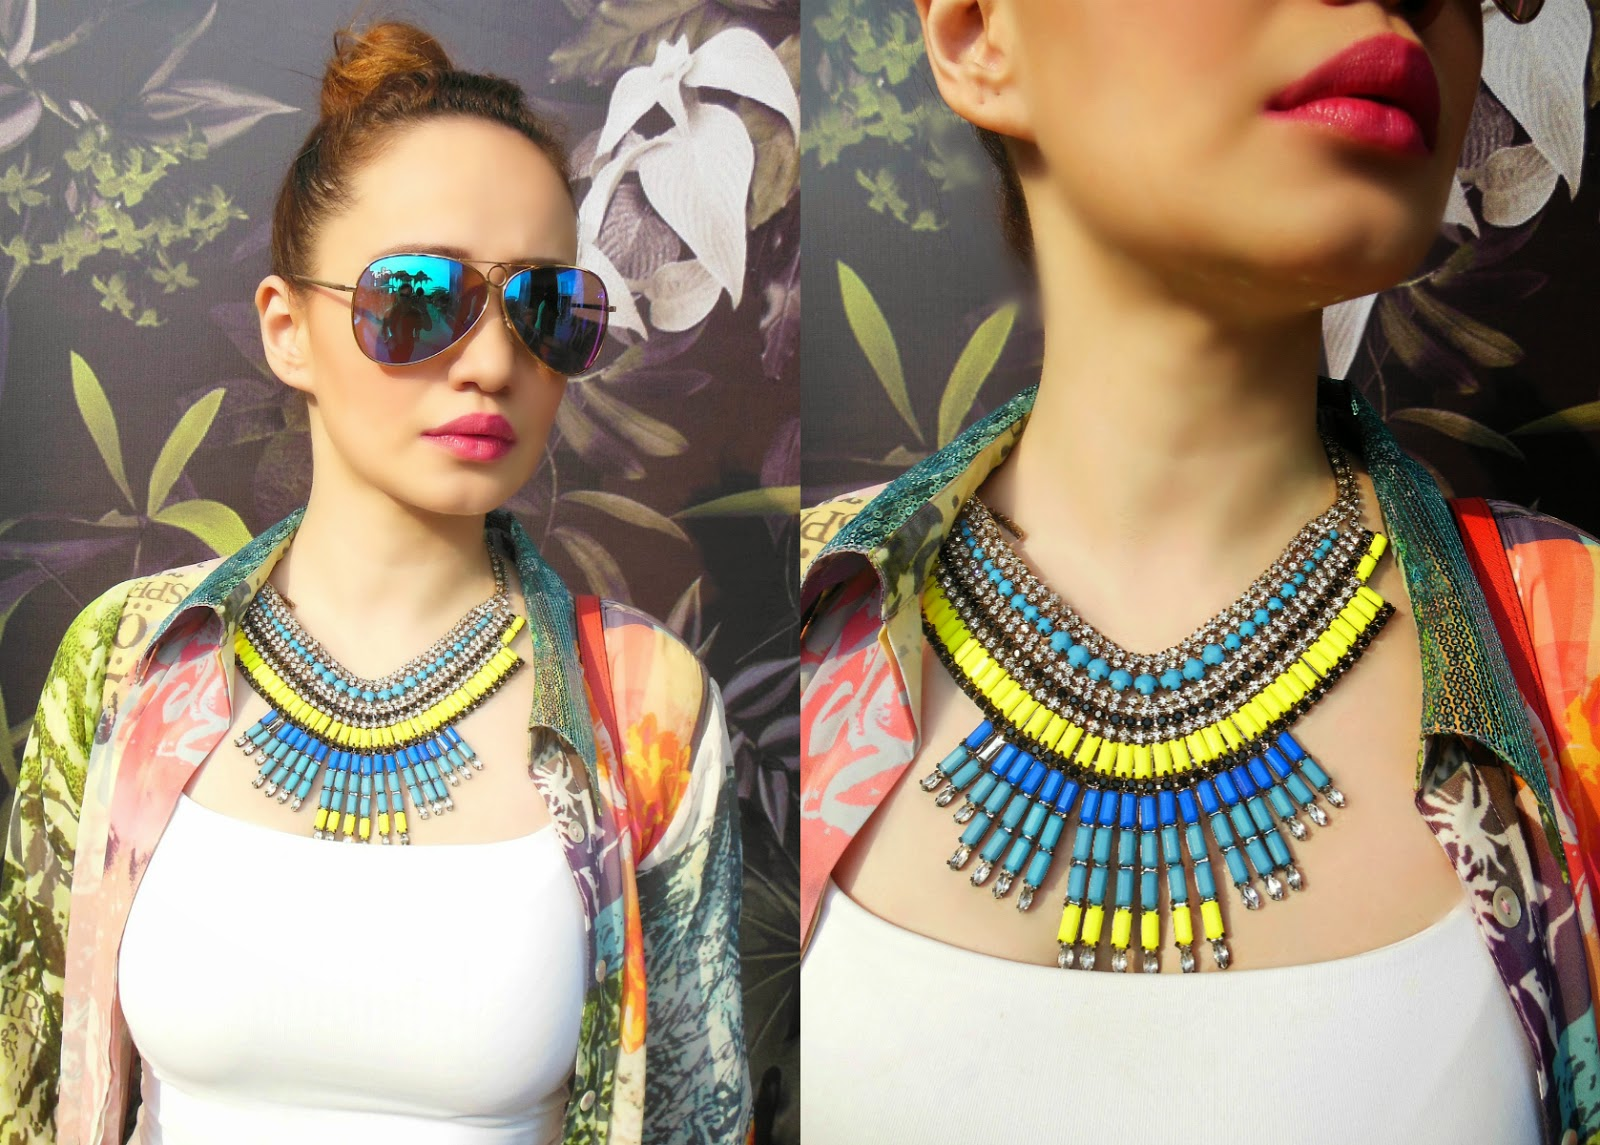 Ray-ban blue mirrored sunglasses, Blue & yellow statement necklace